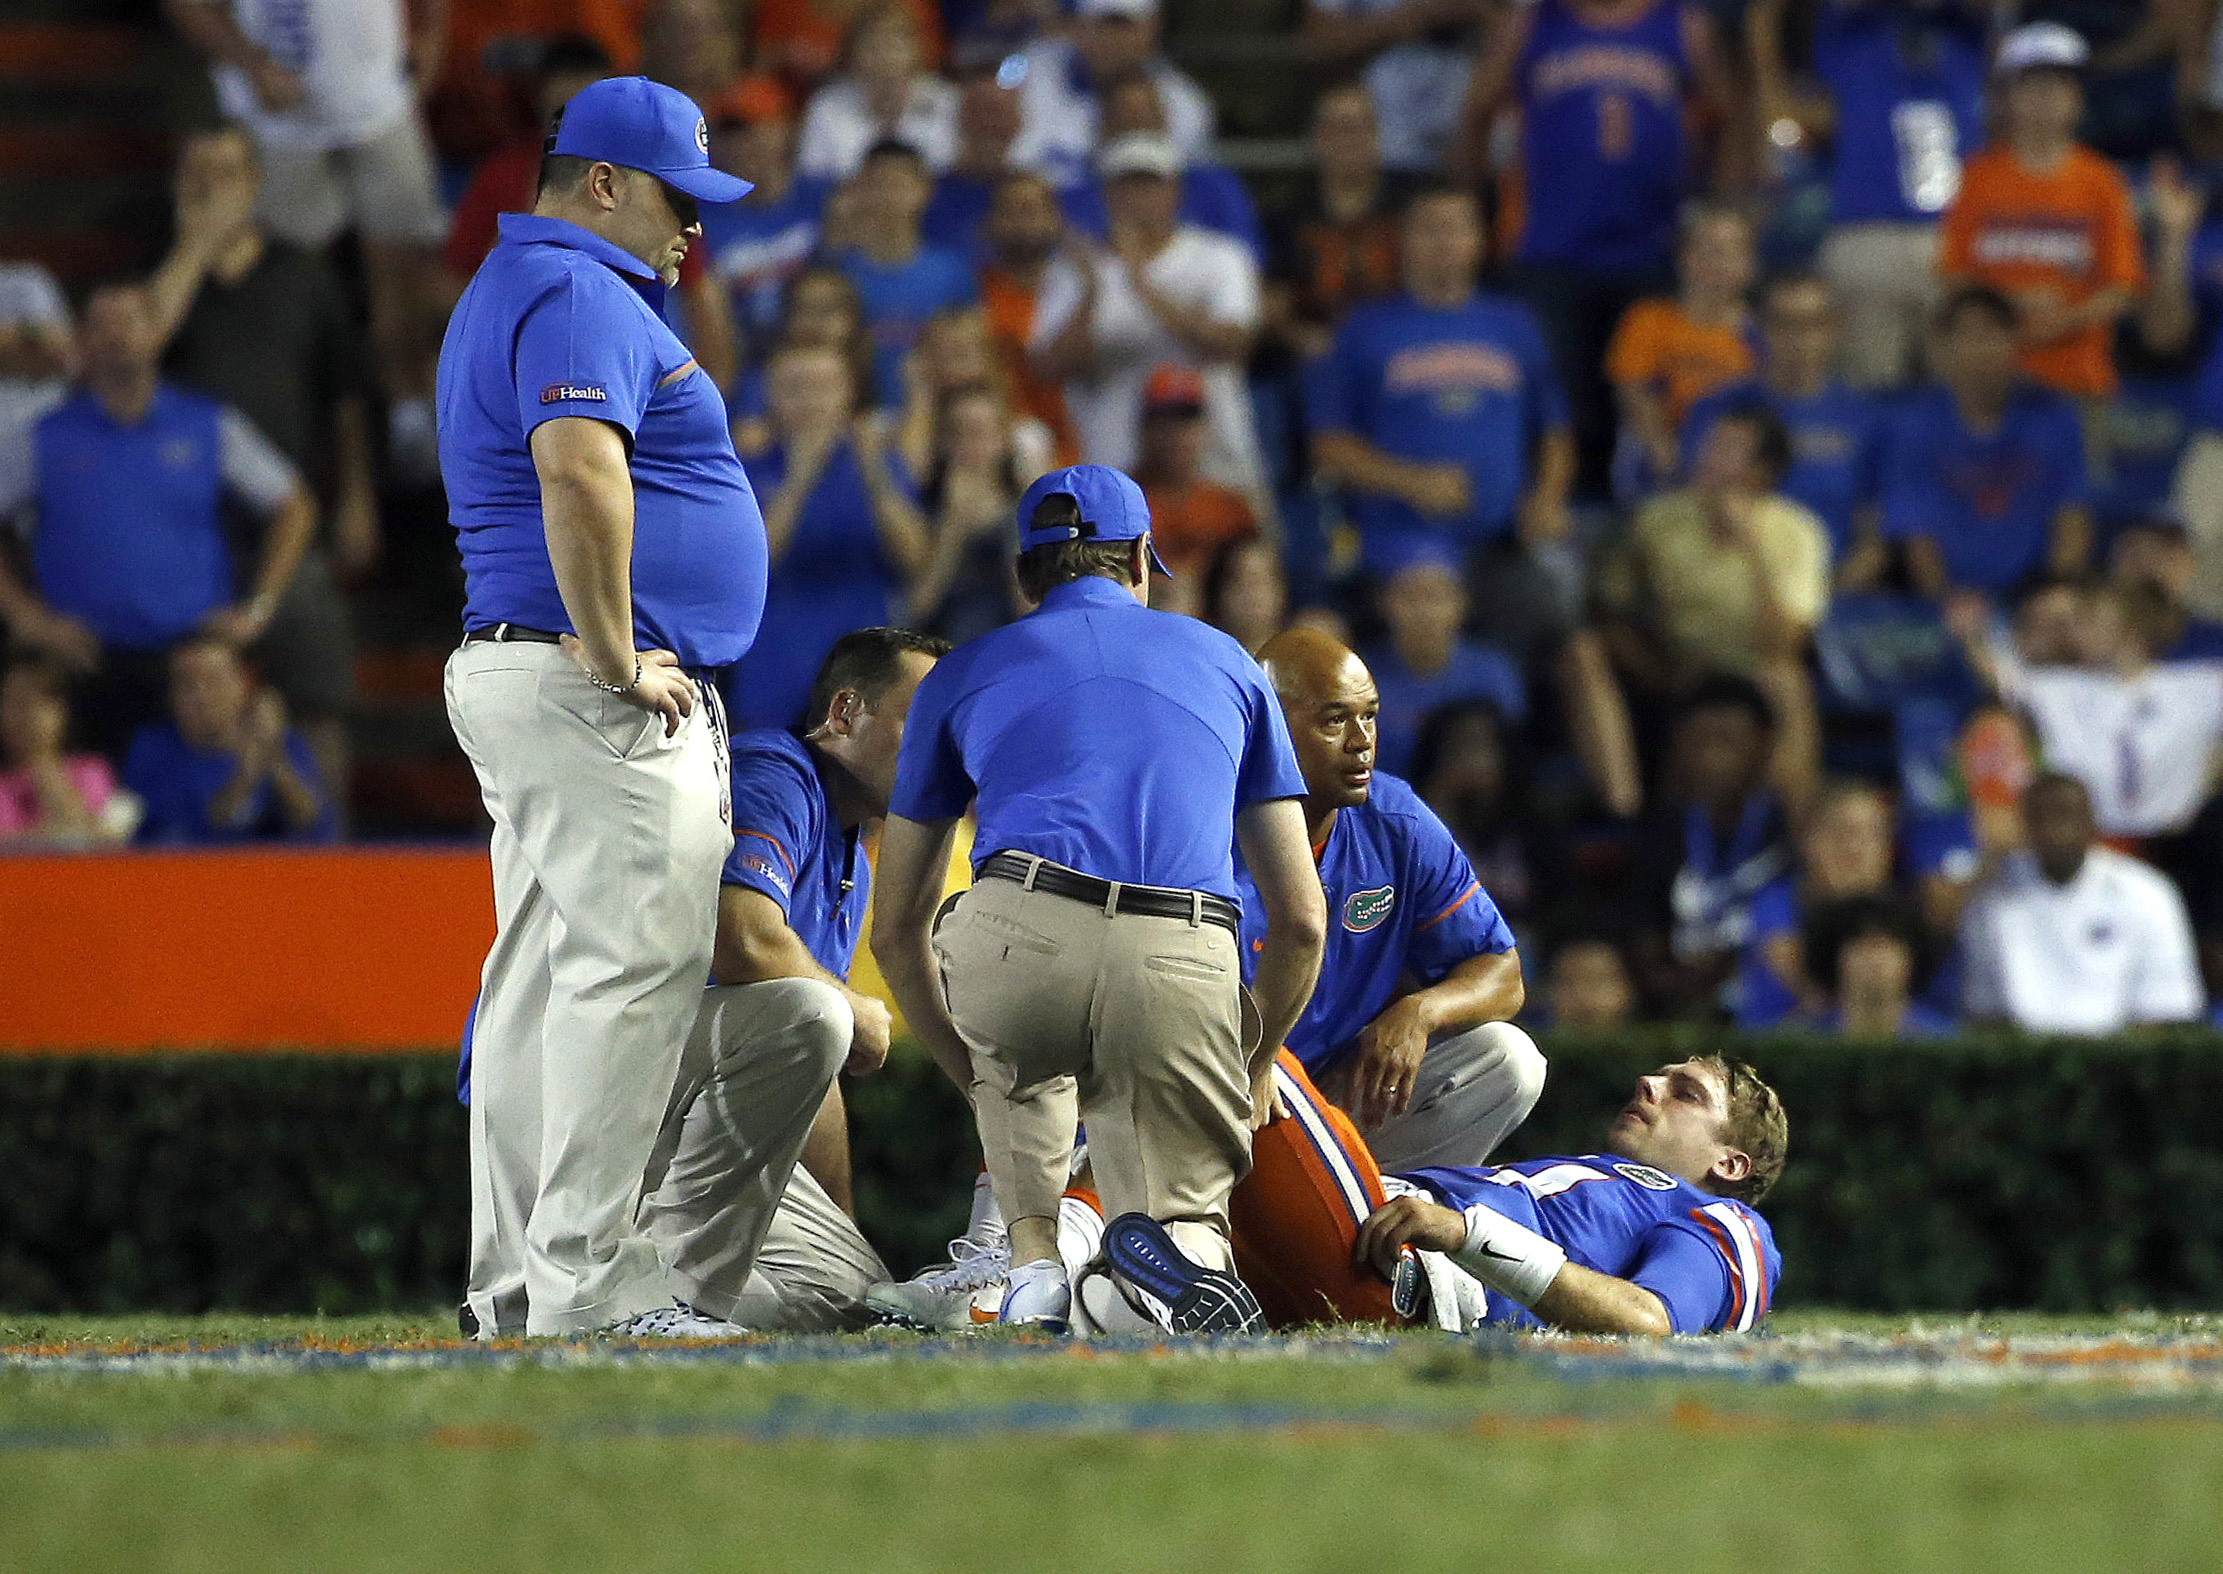 Sep 17, 2016; Gainesville, FL, USA; Florida Gators quarterback Luke Del Rio (14) gets checked out by trainers on the field and then leaves the game against the North Texas Mean Green during the second half at Ben Hill Griffin Stadium. Florida Gators defeated the North Texas Mean Green 32-0. Mandatory Credit: Kim Klement-USA TODAY Sports